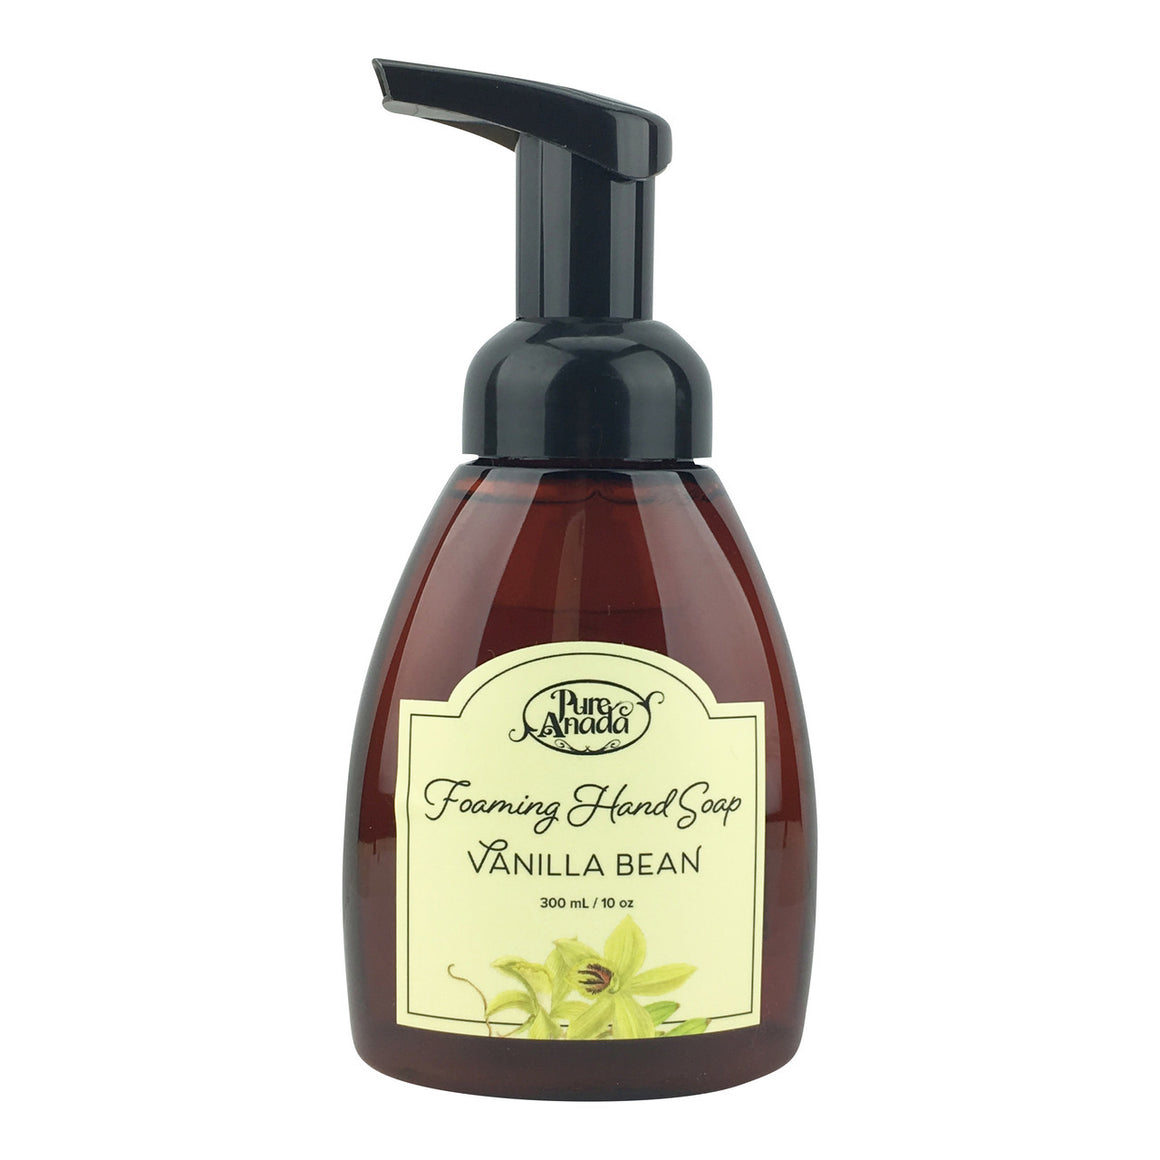 Foaming Hand Soap - Vanilla Bean 300ml